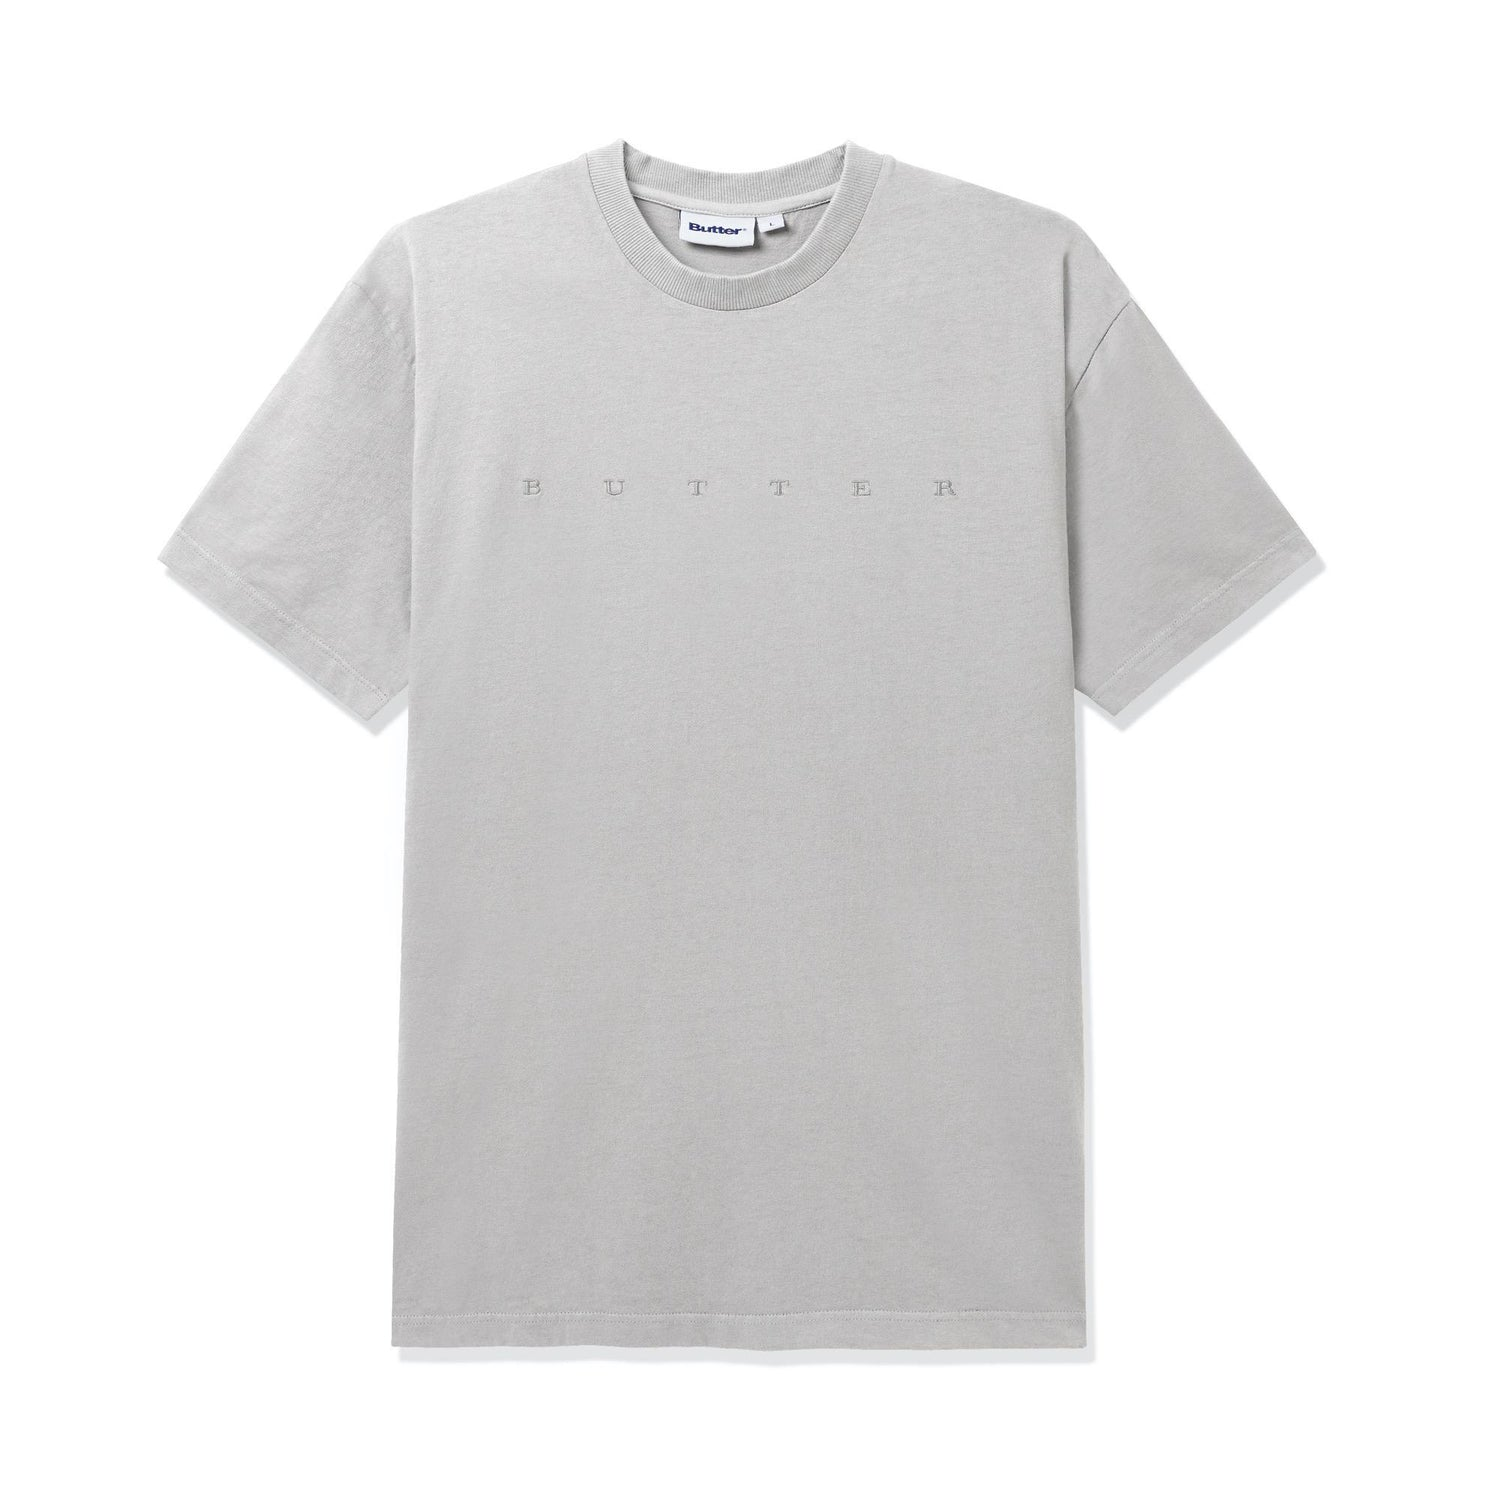 Hampshire Pigment Dye Tee, Cement